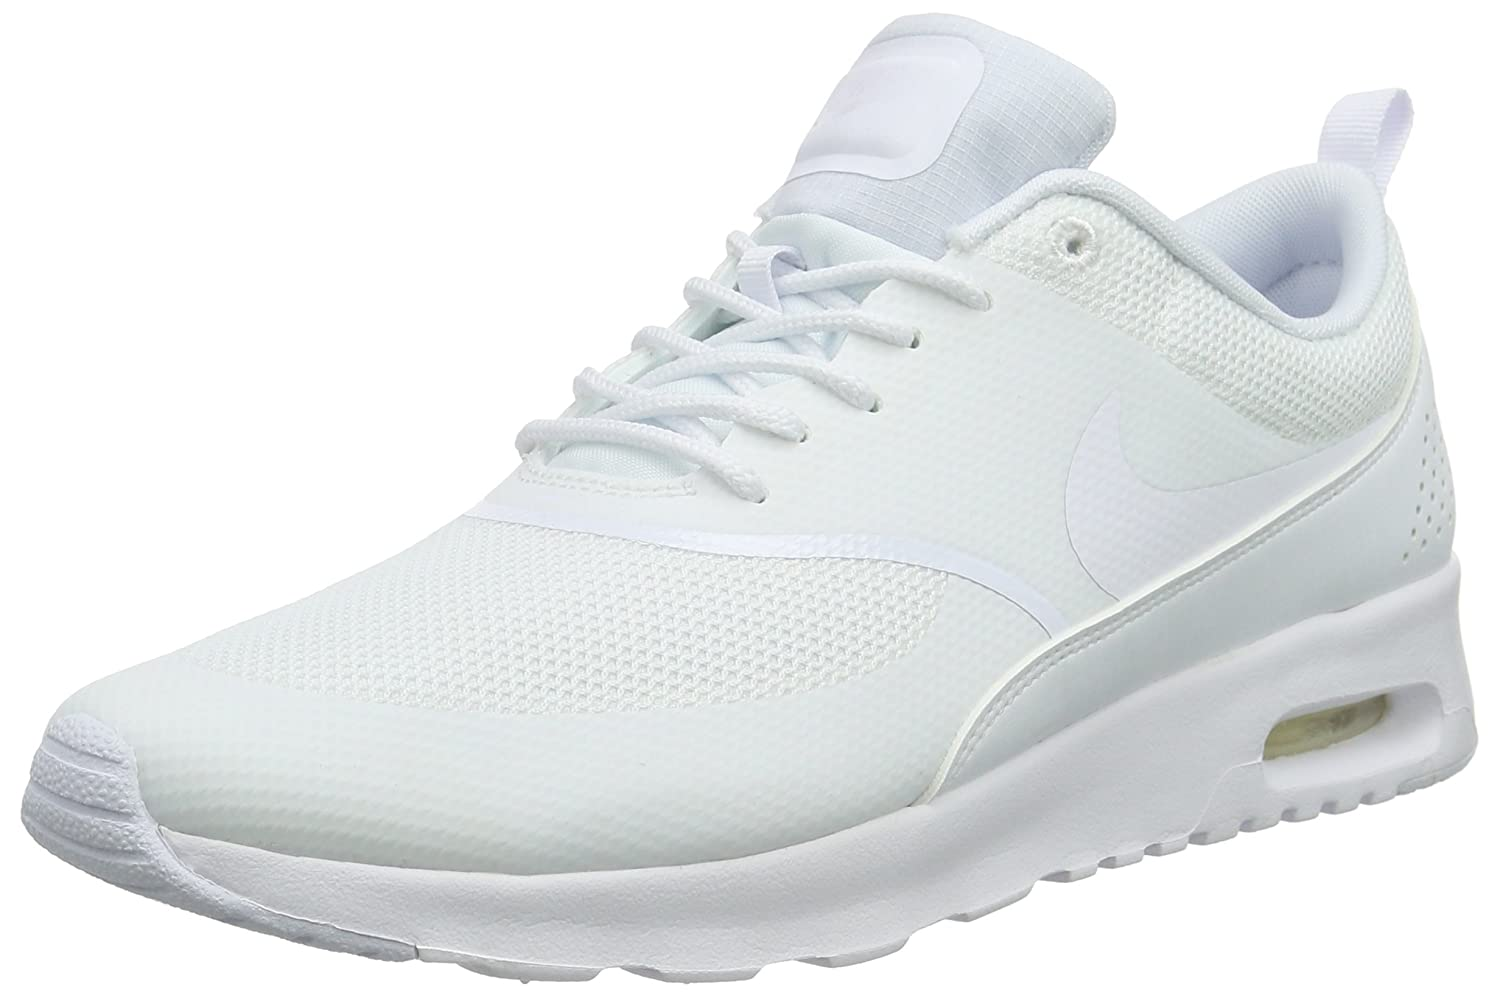 50a7683474 Nike Air Max Thea, Women Low-Top Sneakers, White (White/White), 8.5 UK (43  EU): Amazon.co.uk: Shoes & Bags